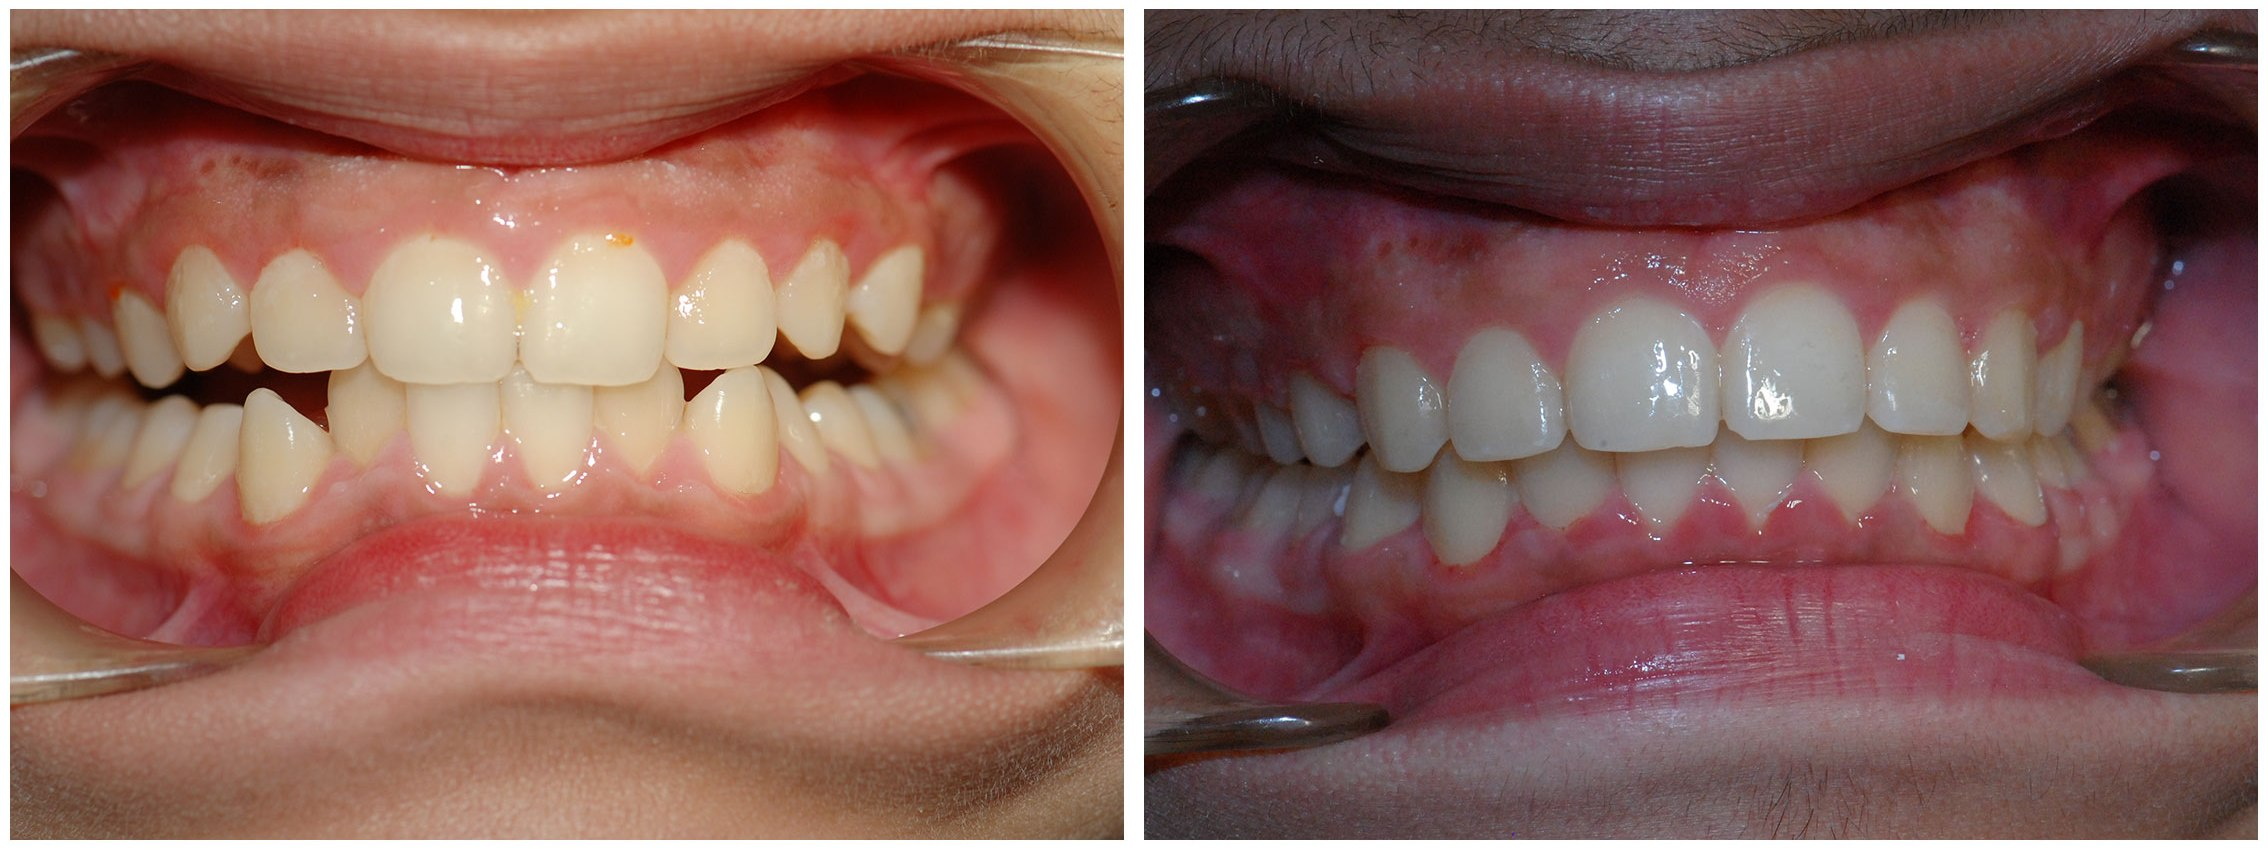 Orthodontic Dental Braces Treatment Before & After